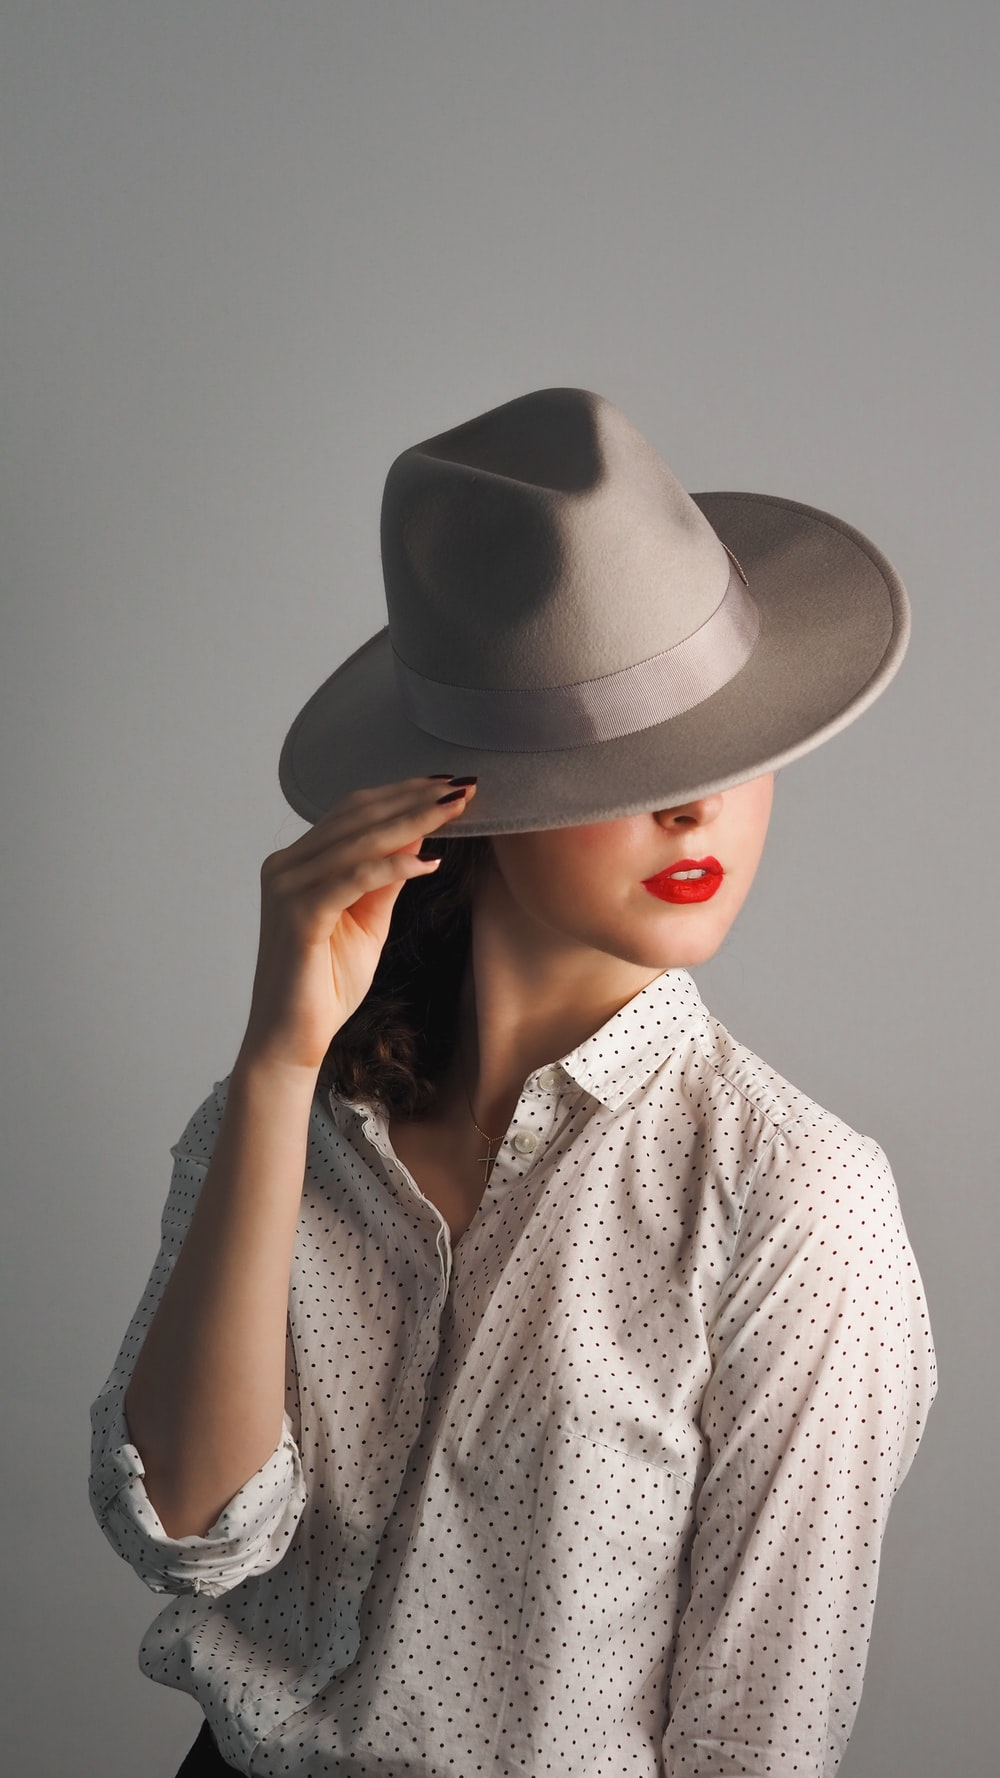 woman in grey hat and grey button up shirt